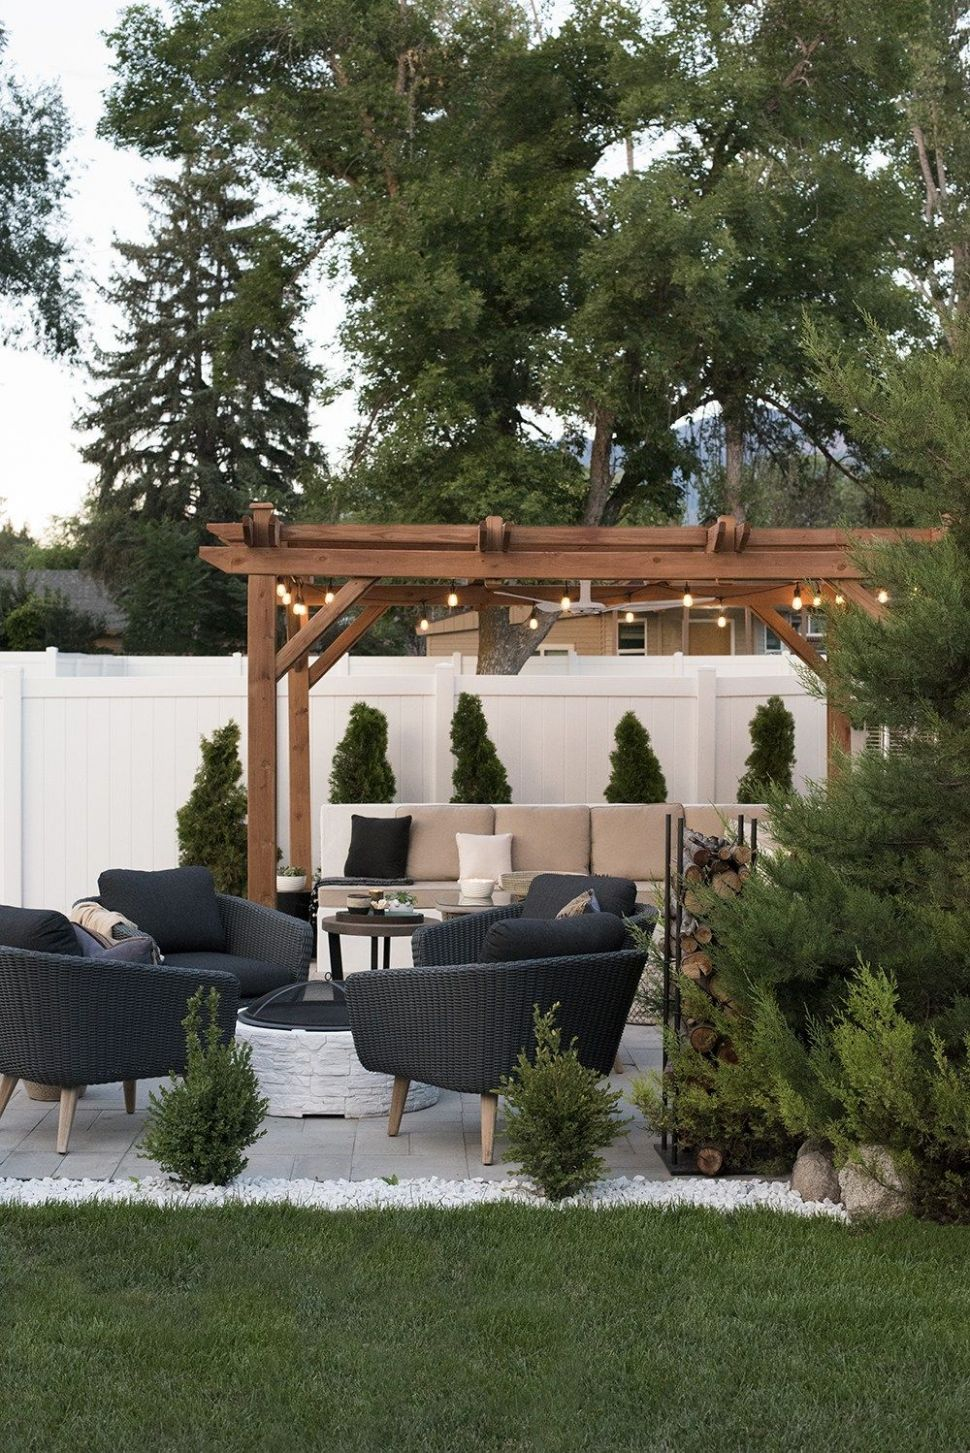 10 Best Pergola Ideas for the Backyard - How to Use a Pergola